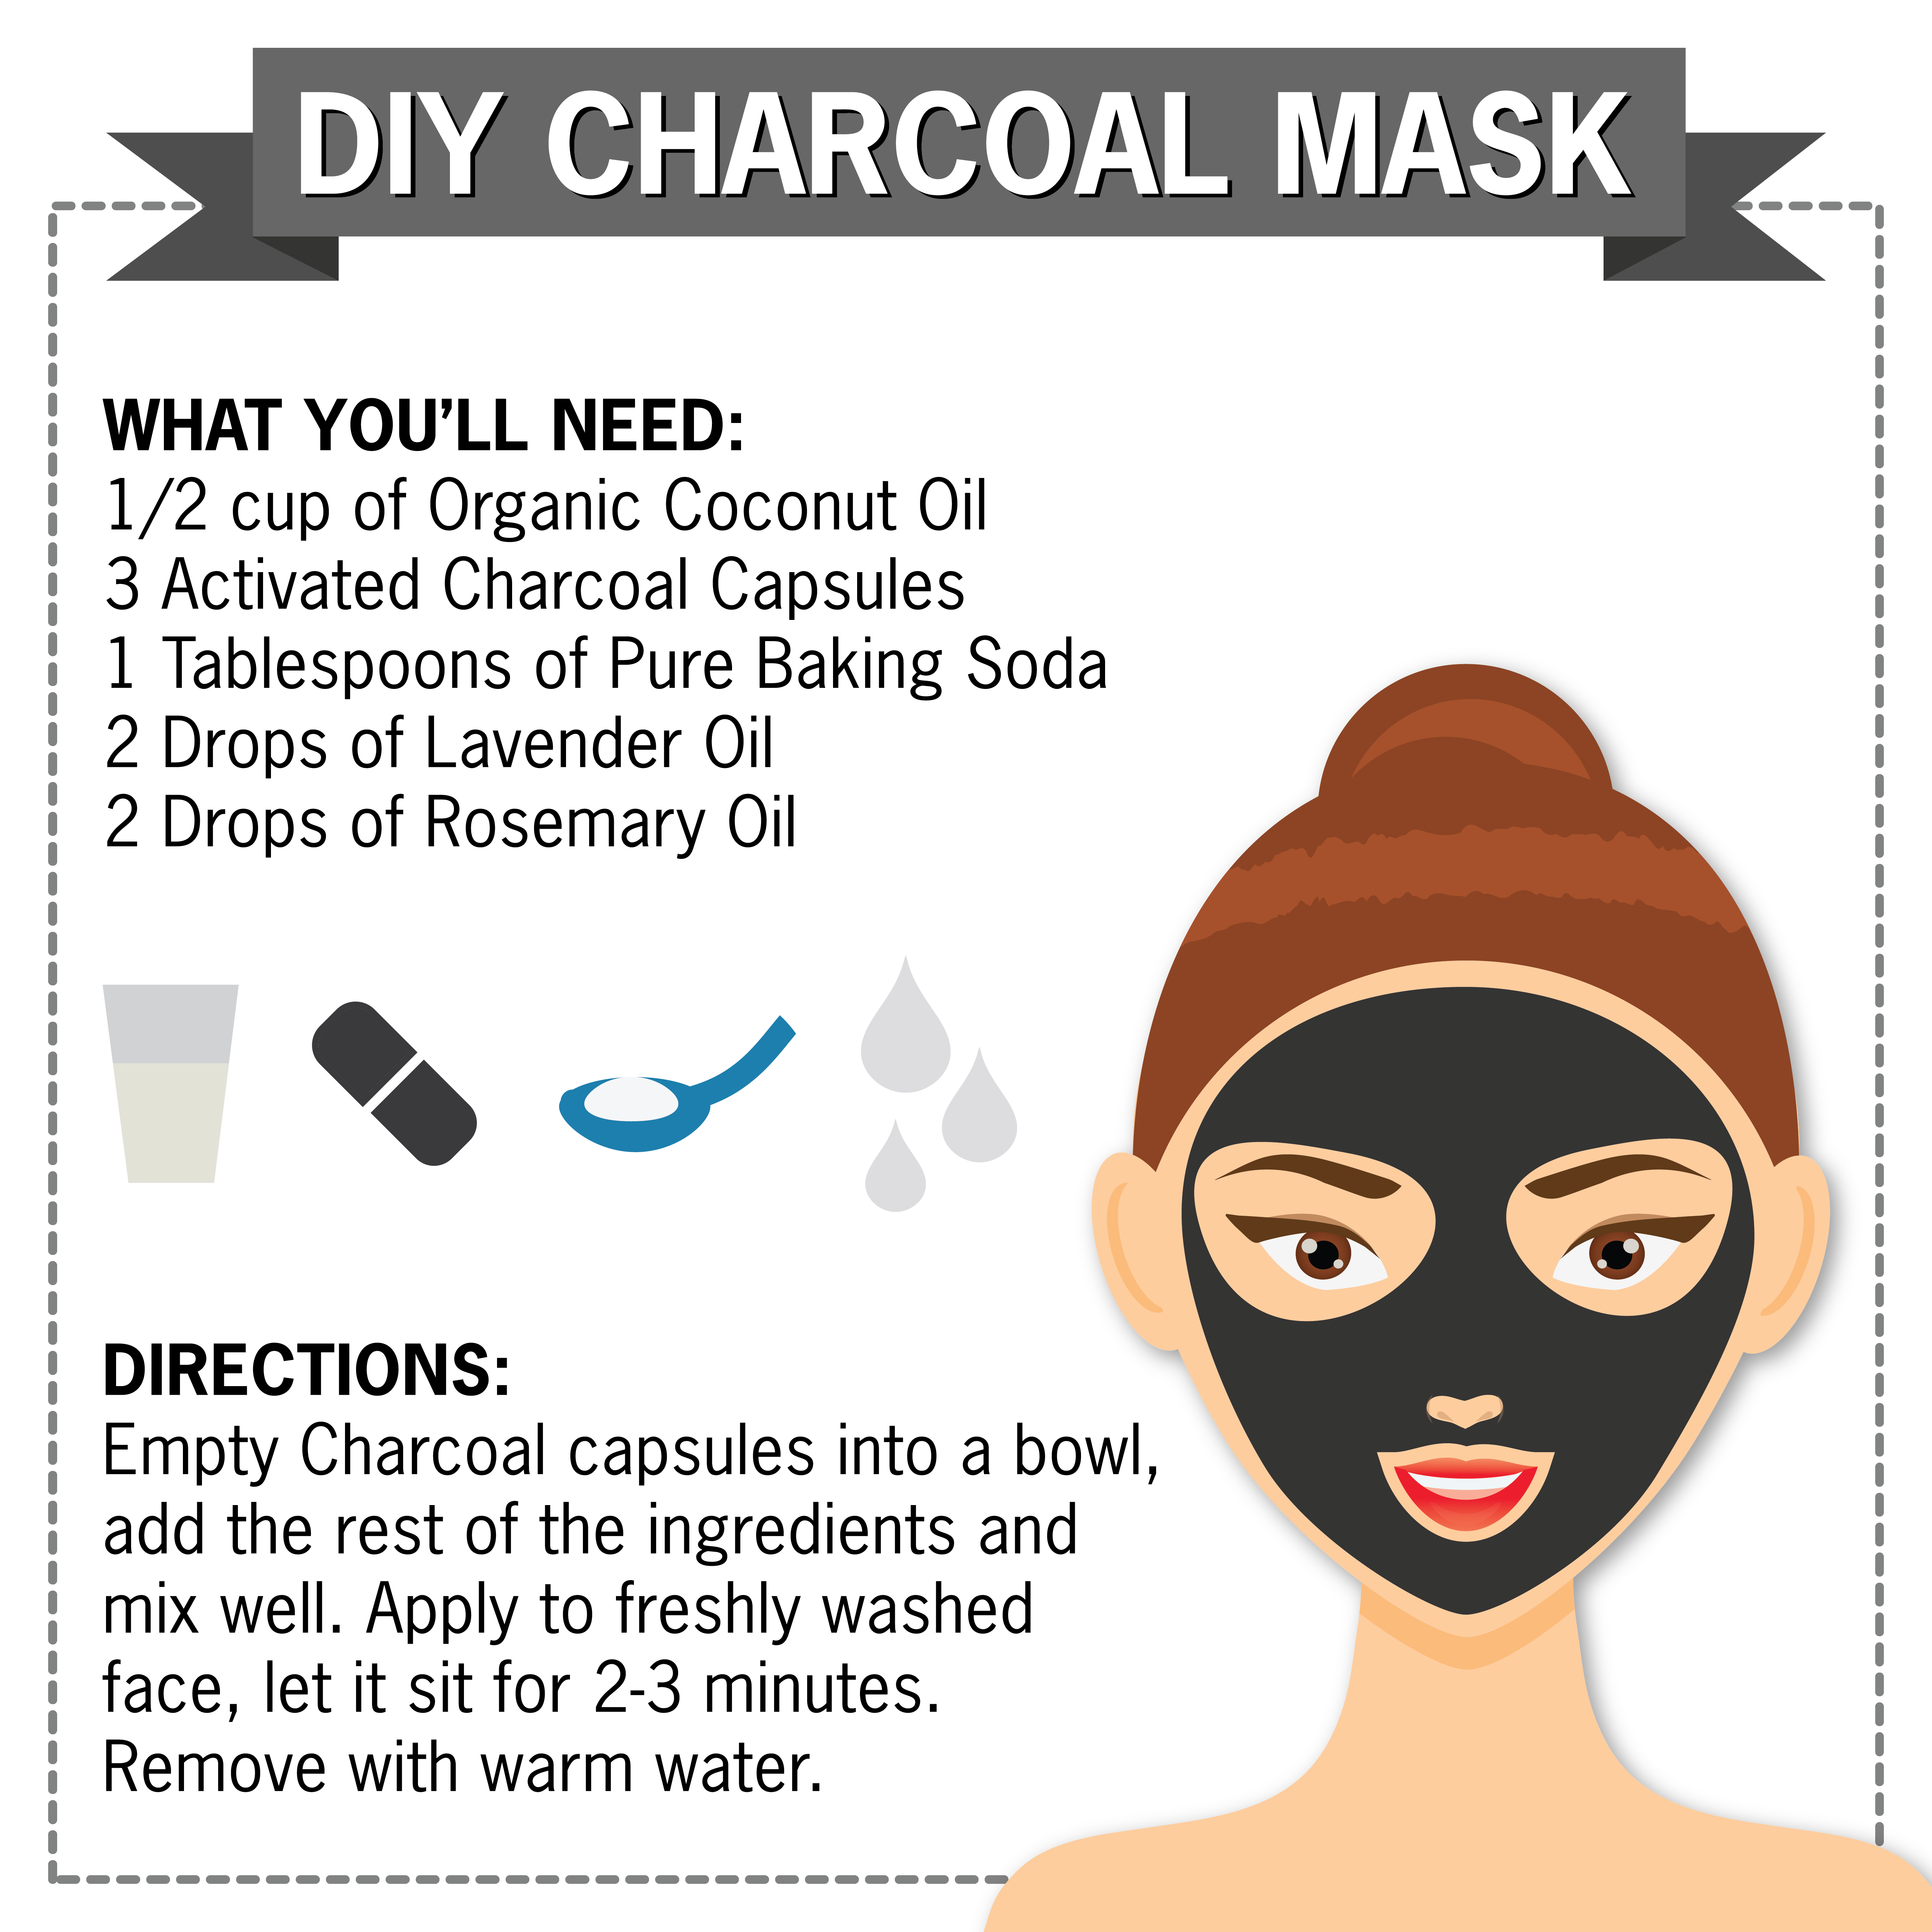 Nature's Truth DIY Charcoal Mask Activated Charcoal Essential Oils Coconut Oil #HomemadeSkinCareForAcne